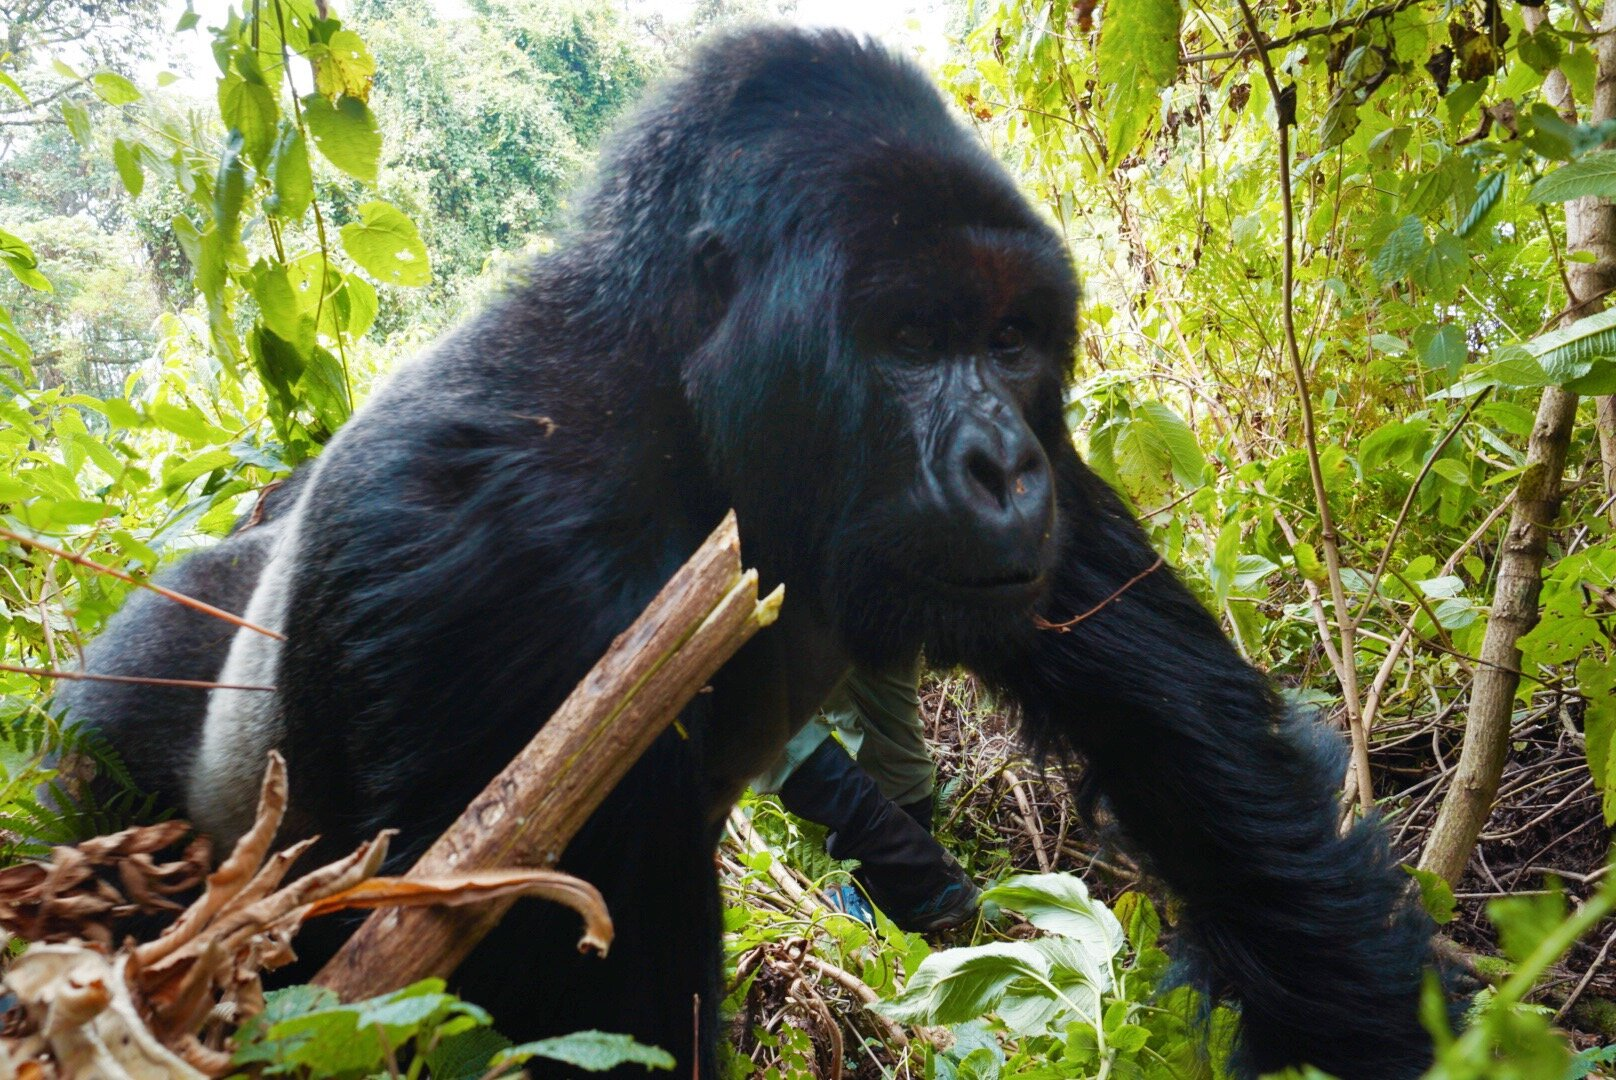 Read all about our Gorilla Trek when we tracked gorillas up close and personal by clicking the photo above!